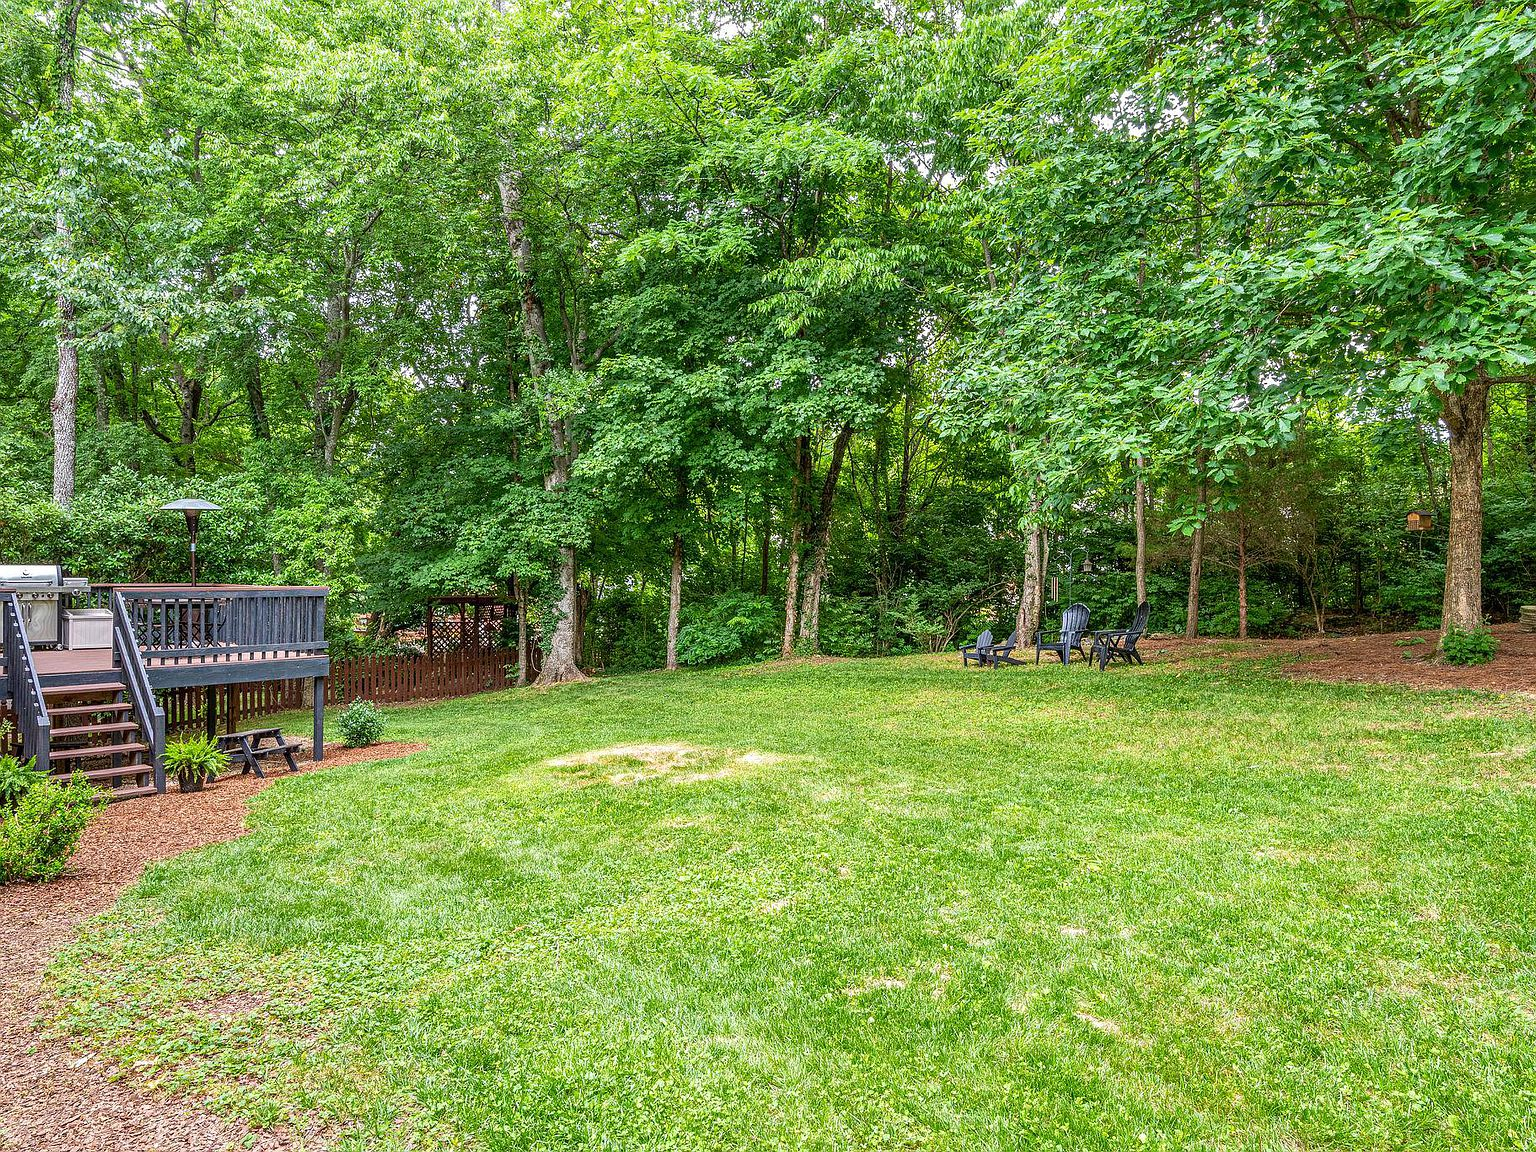 shaded backyard update - creating a forest feel in our small suburban backyard